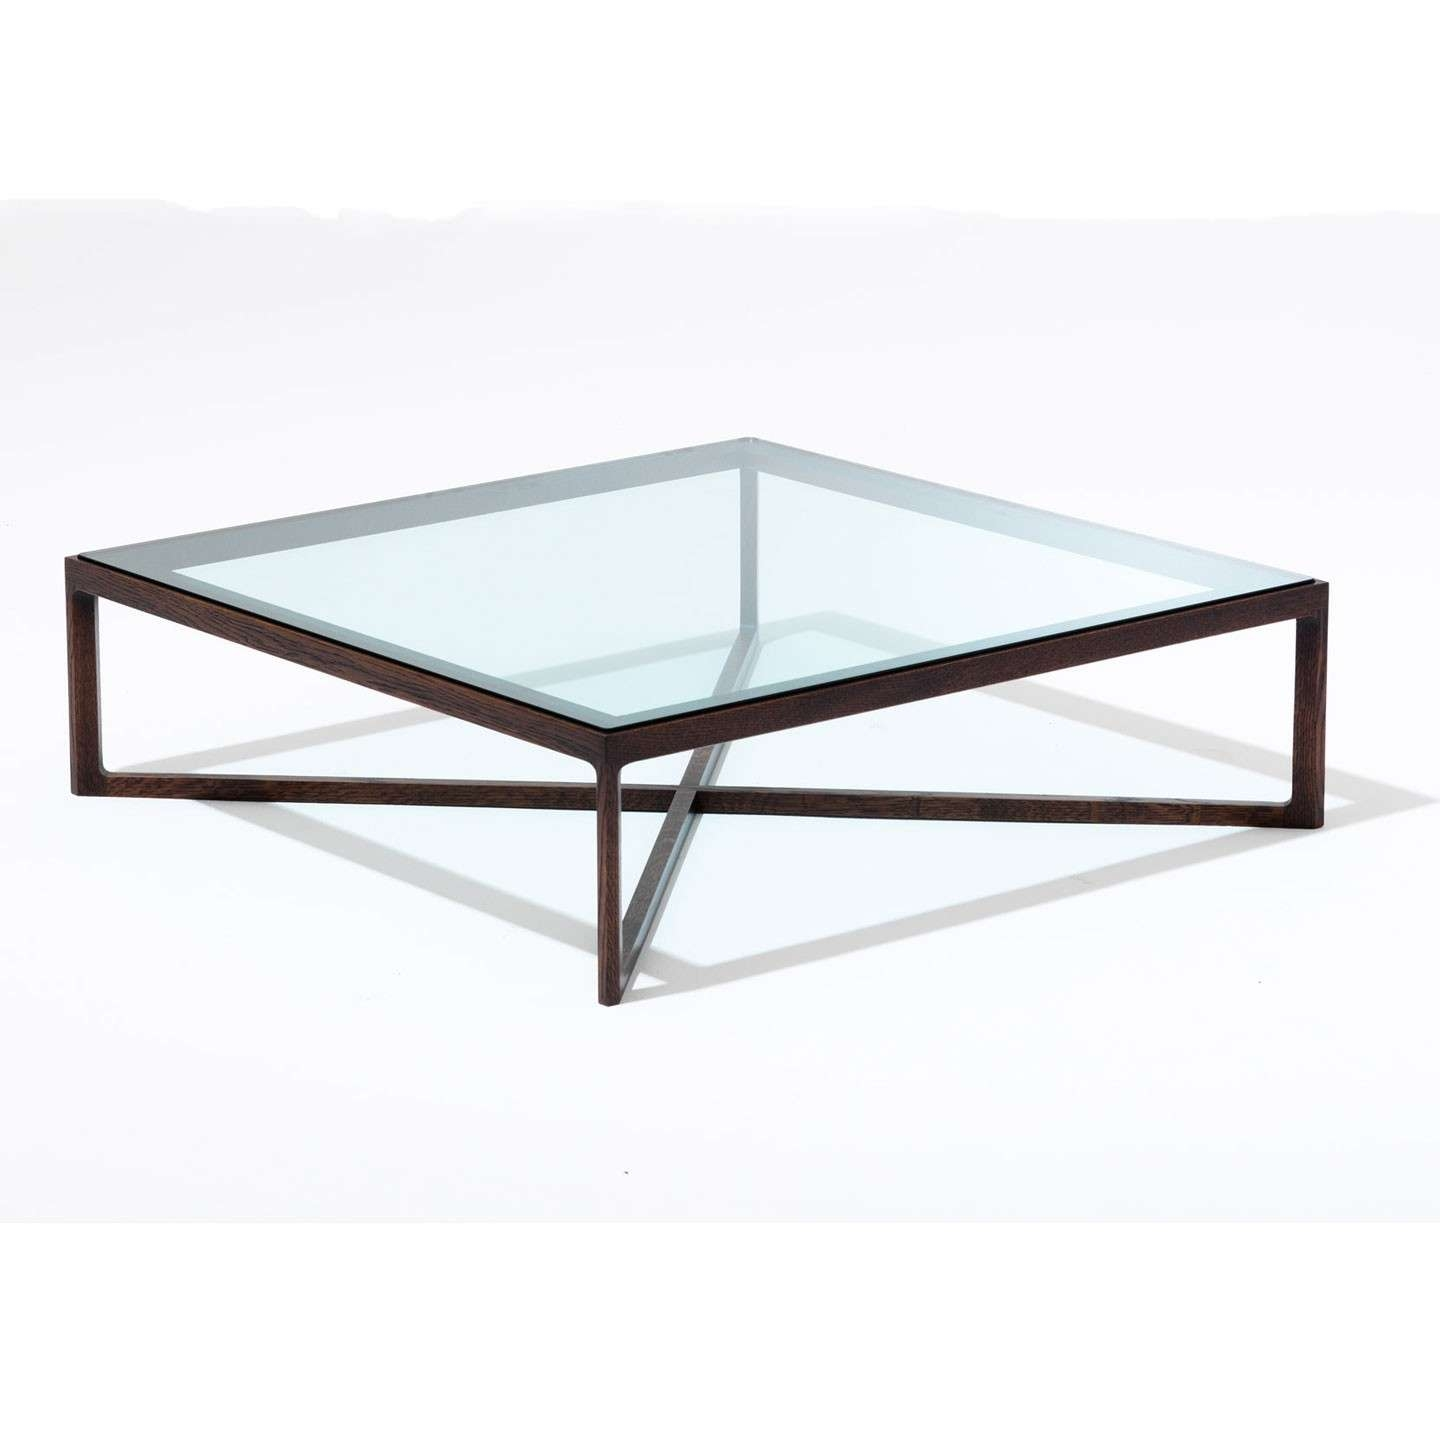 Latest Iron Glass Coffee Table Inside Decorations : Interior Living Room Appealing Low Profile Tempered (View 13 of 20)